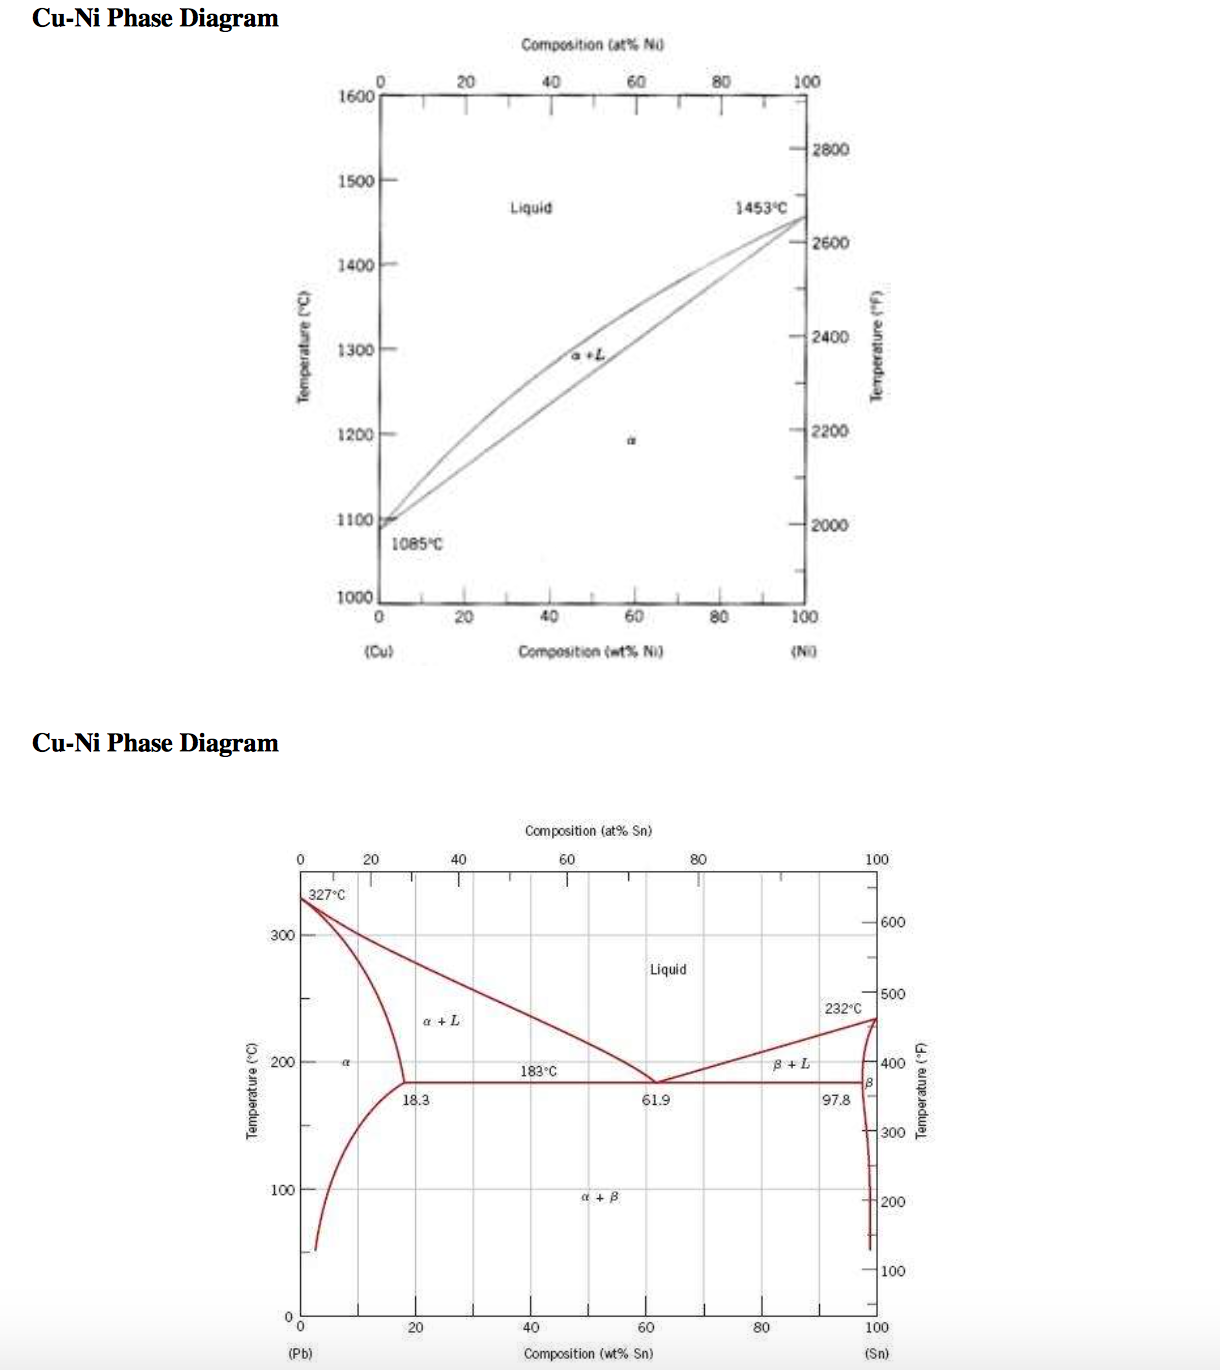 Solved cu ni phase diagram cu ni phase diagram 3 a 65 wt image for cu ni phase diagram cu ni phase diagram 3 ccuart